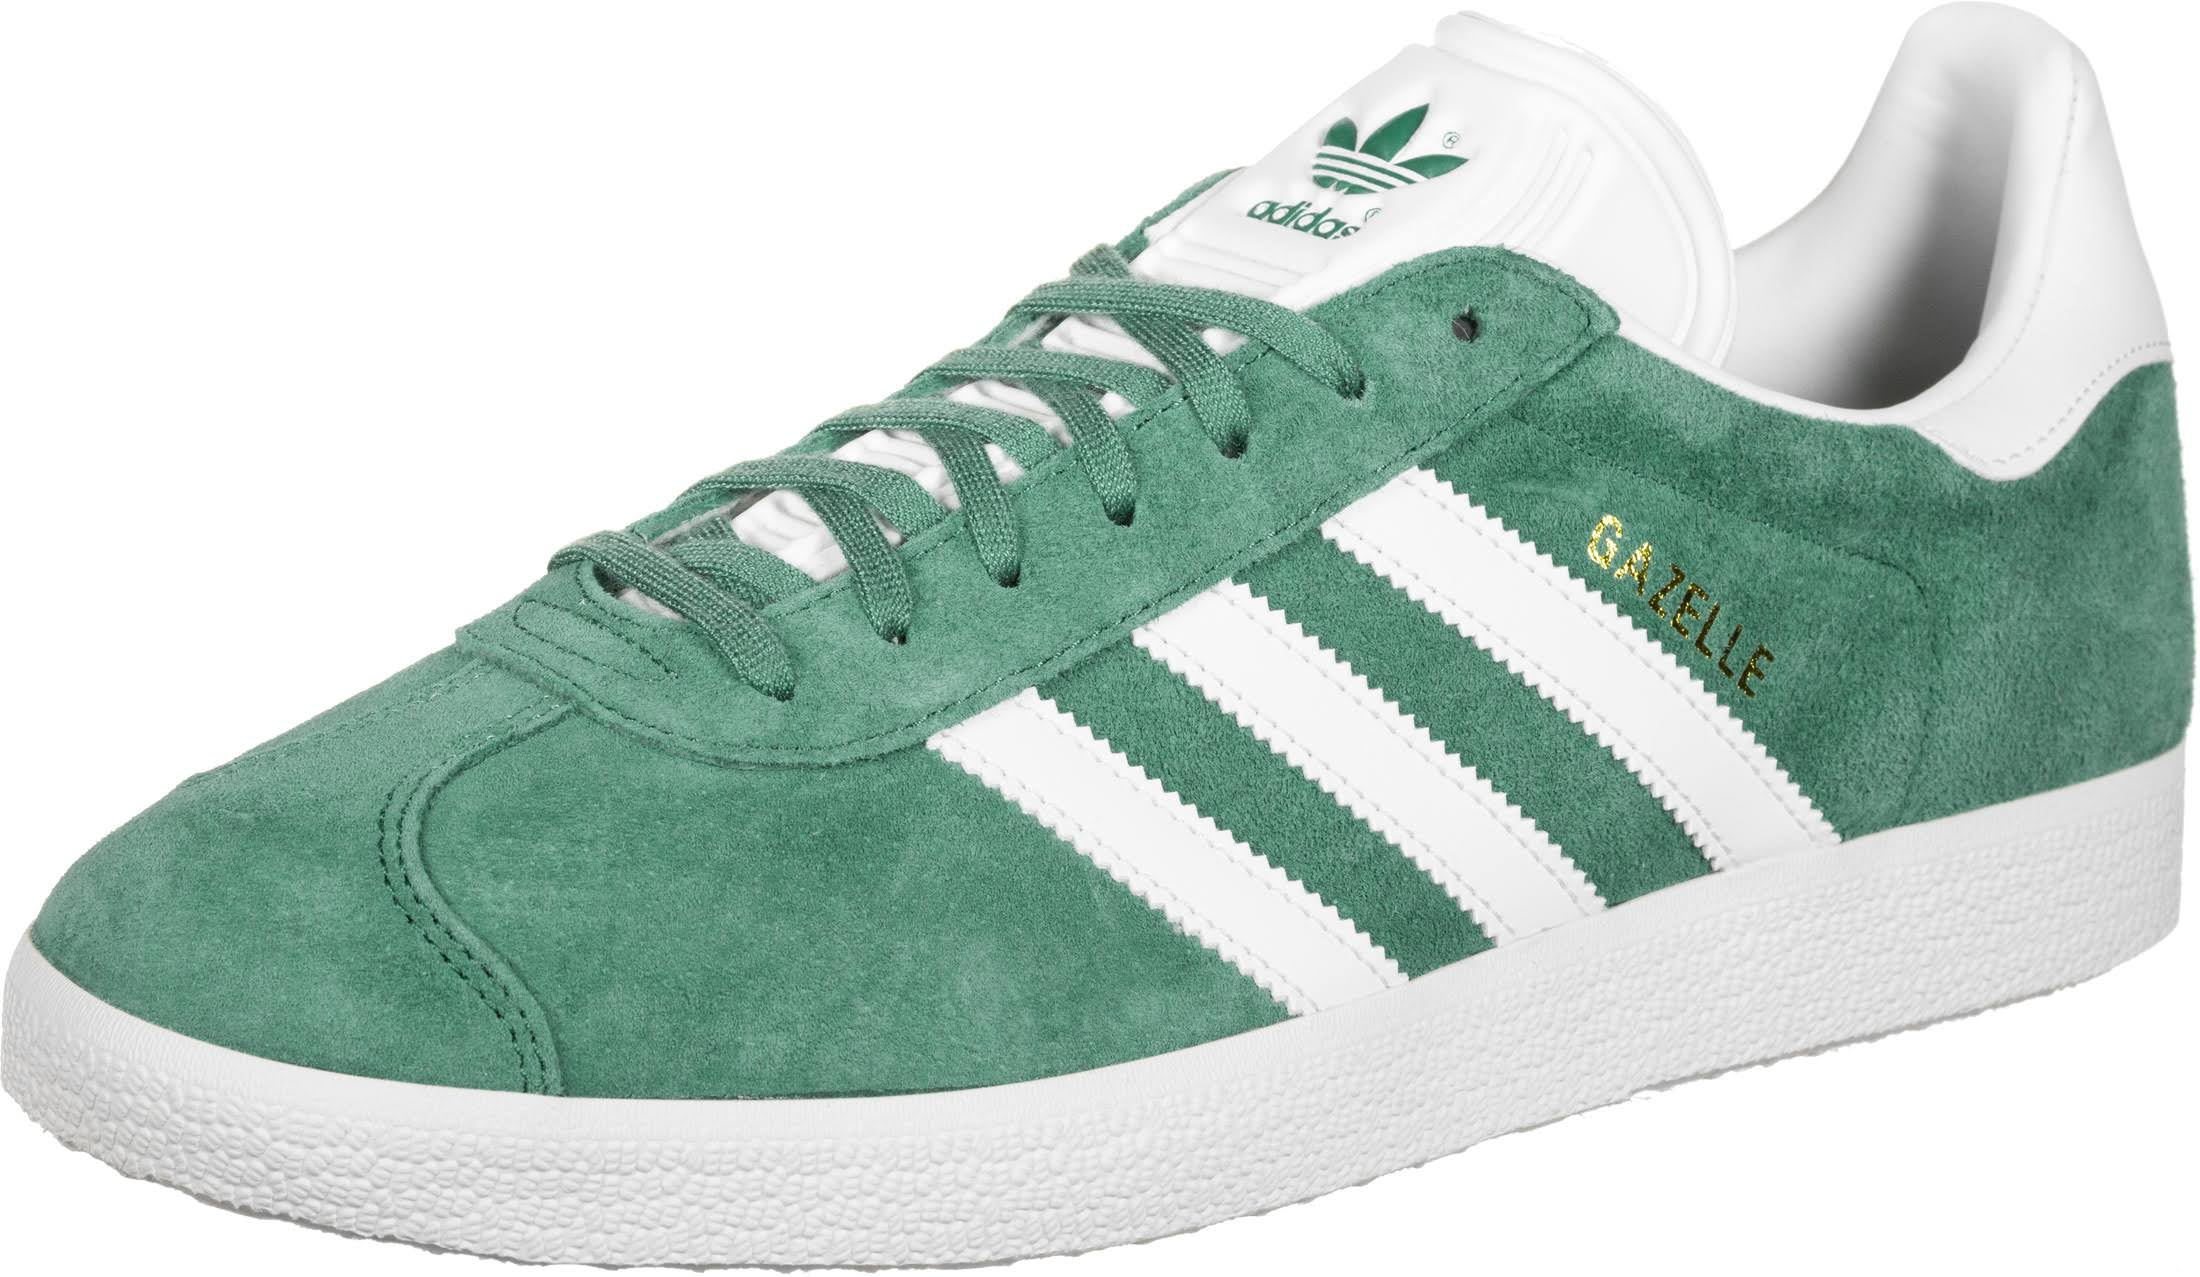 Adidas Shoes (Trainers) Gazelle